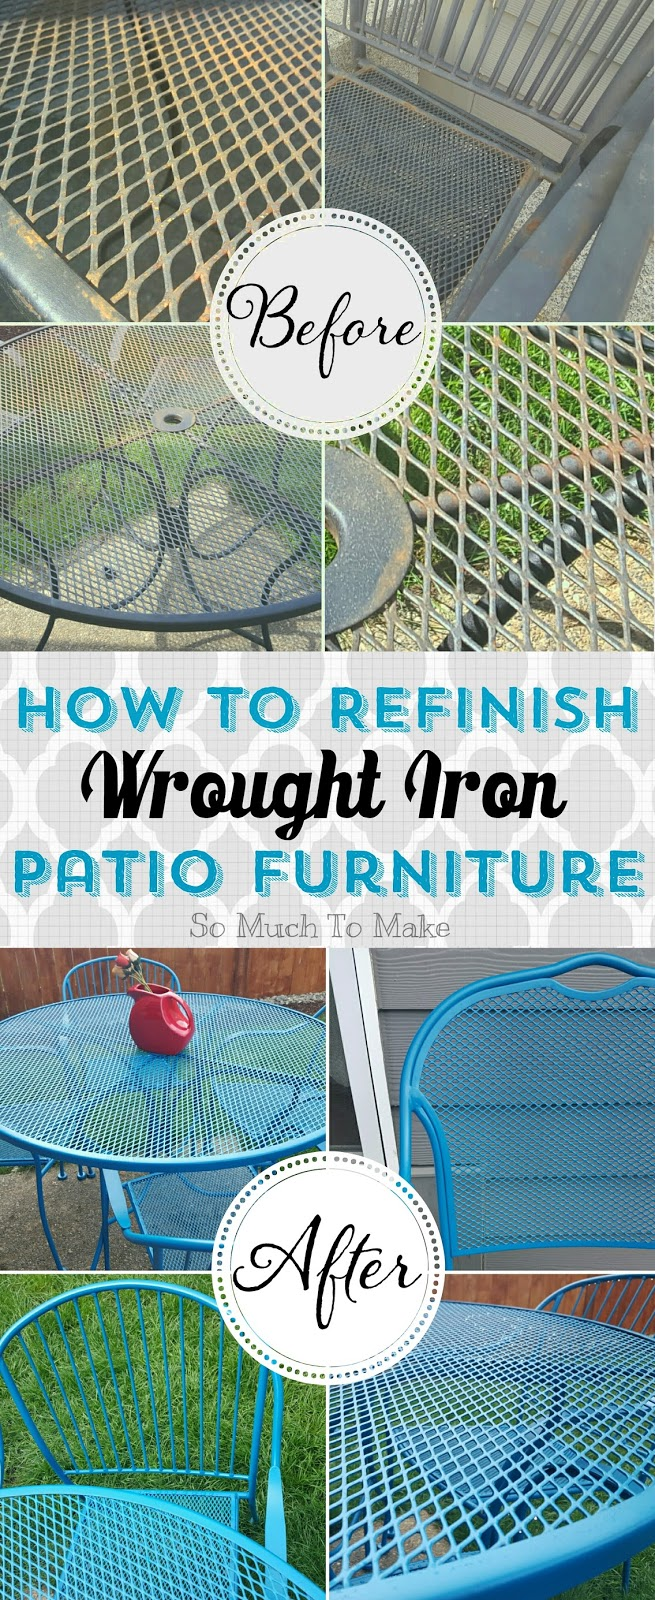 how to refinish wrought iron patio furniture so much to make. Black Bedroom Furniture Sets. Home Design Ideas